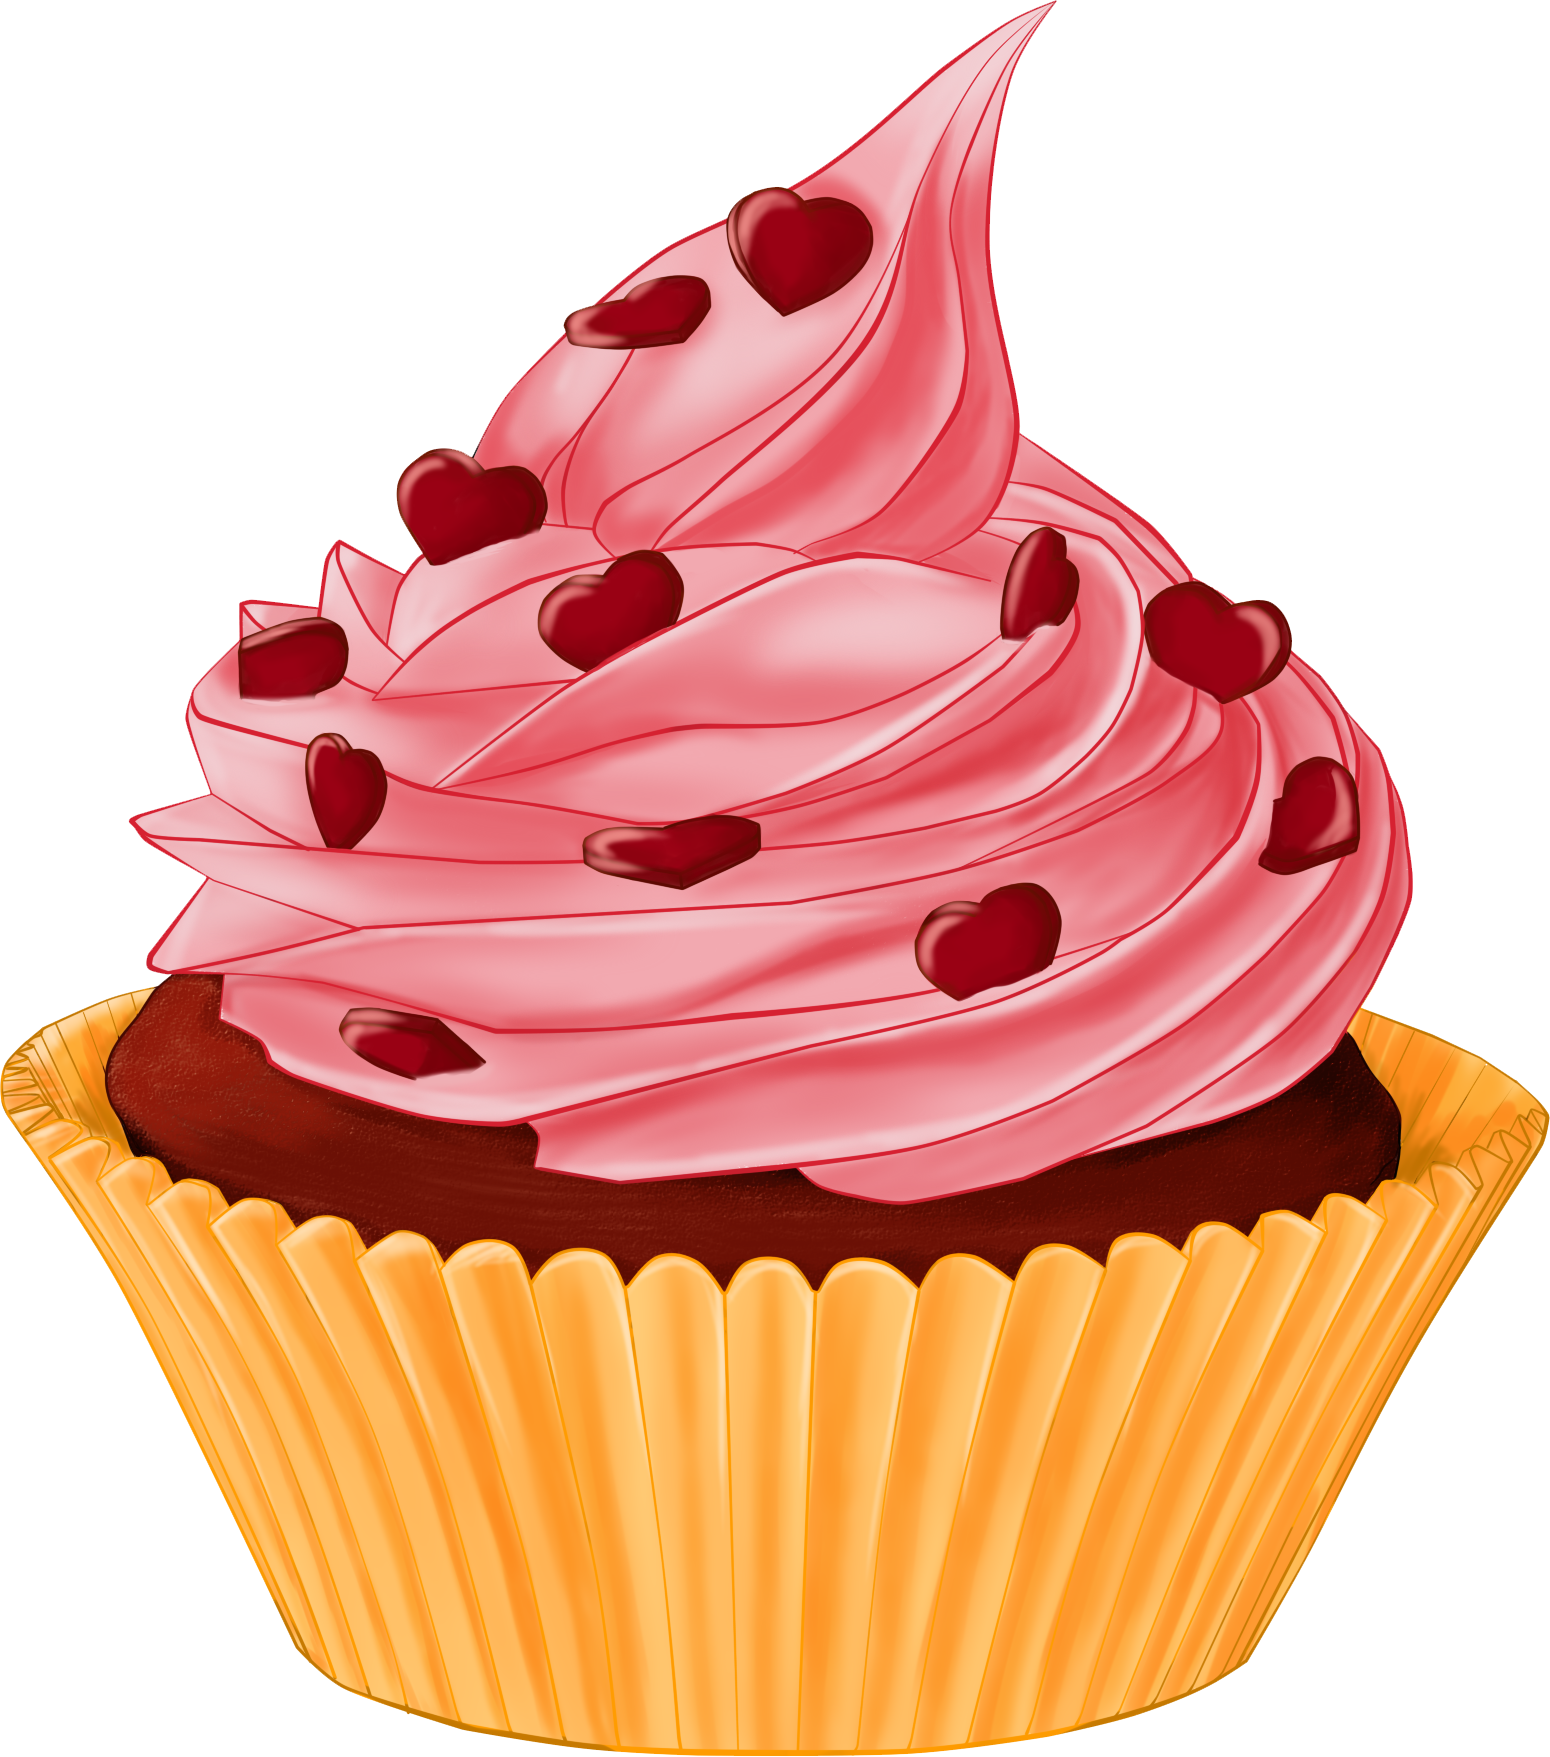 clip transparent stock Png cupcakes x sketchbook. Muffins clipart chalkboard.